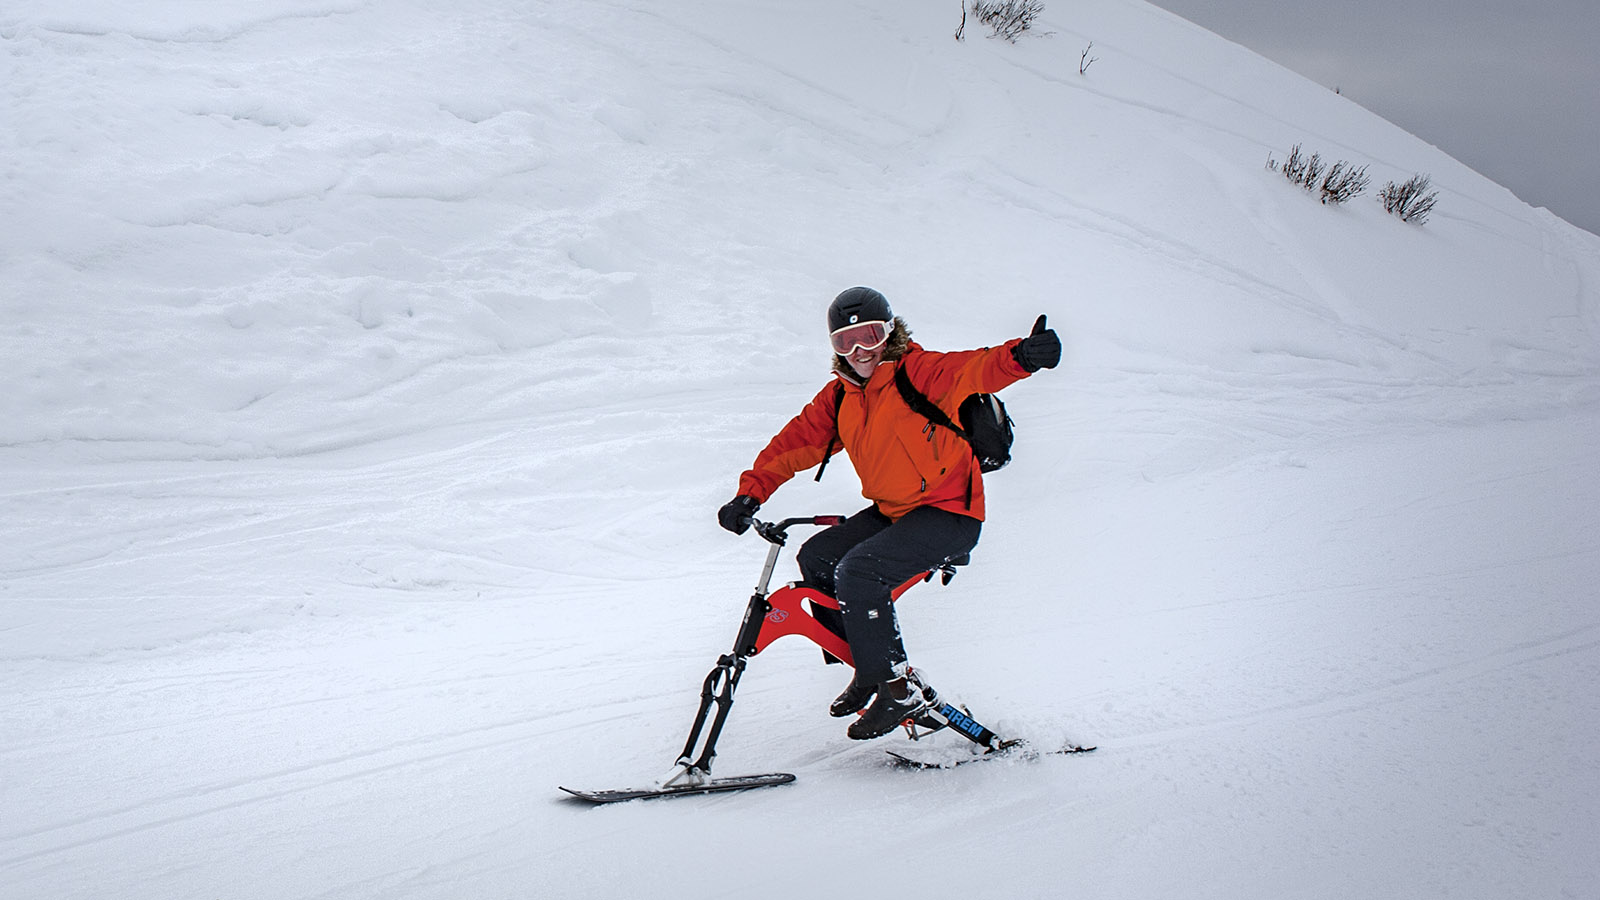 Skibiking in Le Grand Bornand. Foto: Hilke Maunder